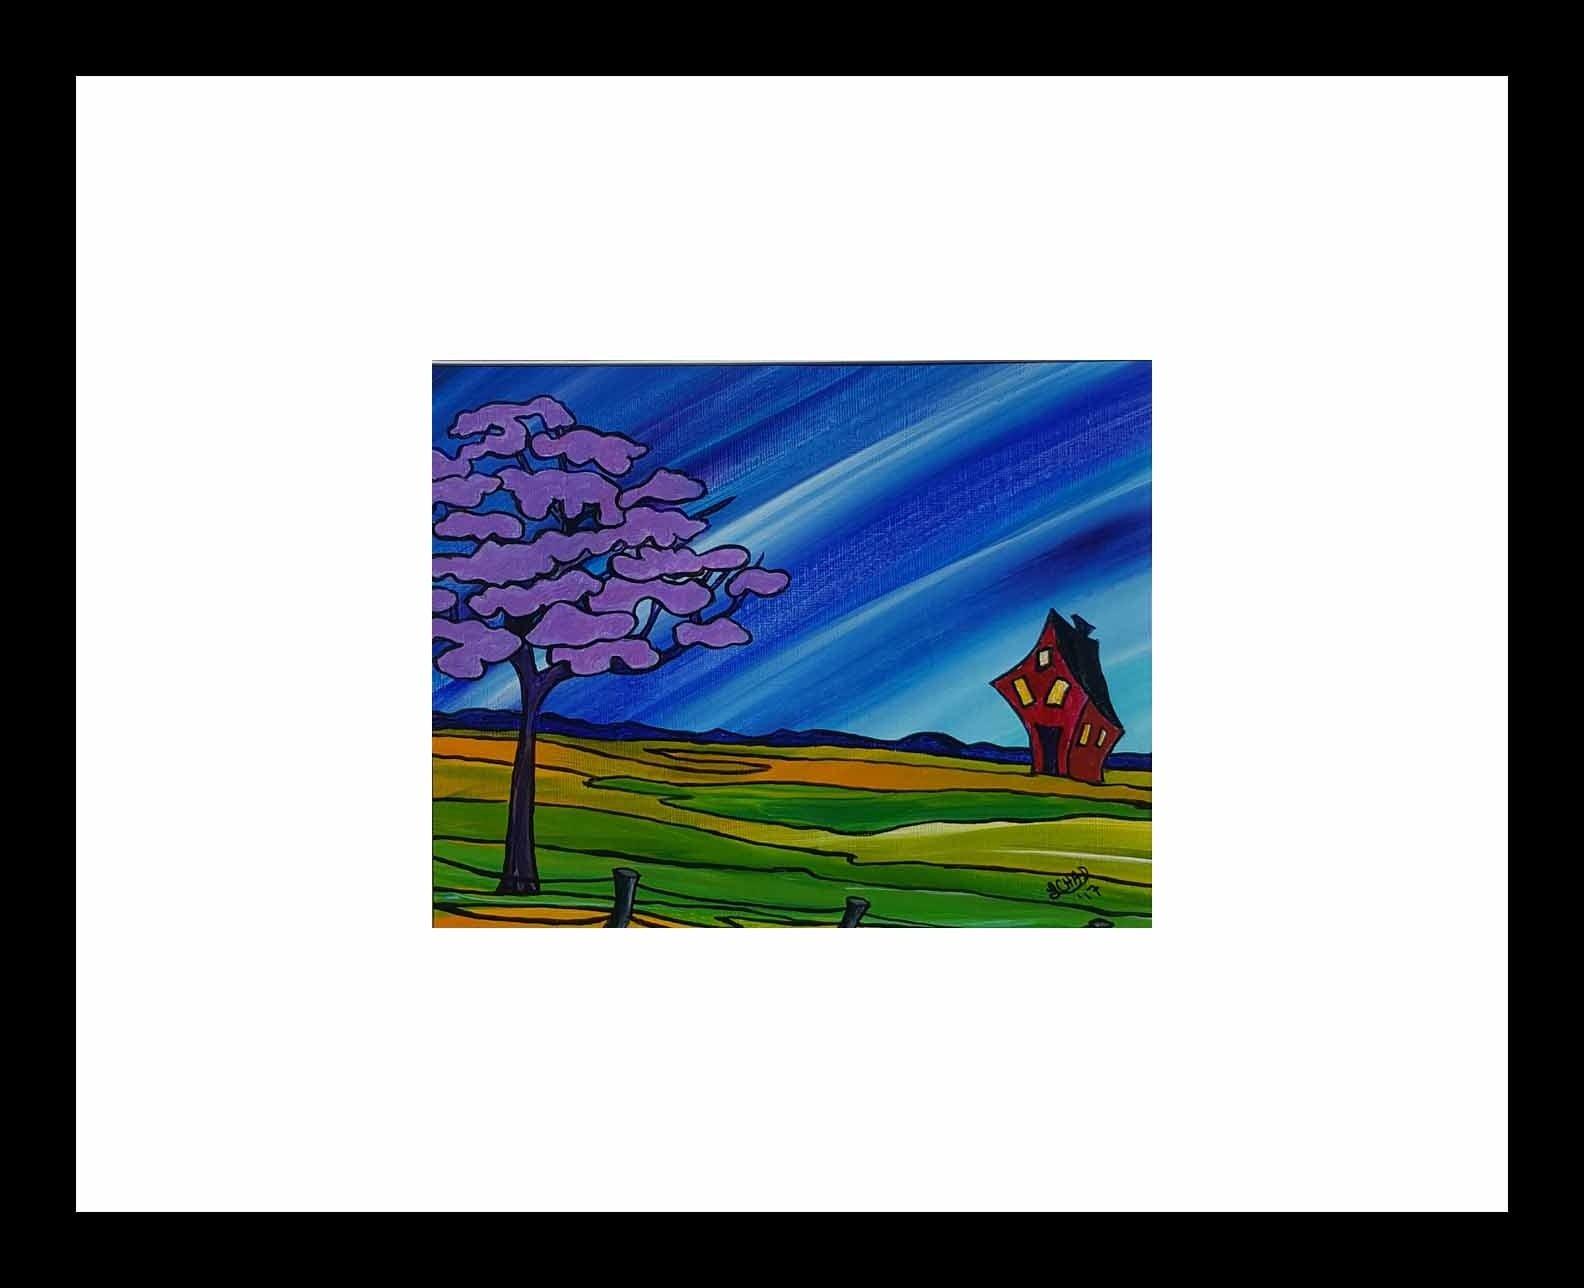 """Happy Trails"" [2017] Image 9.75"" x 7.75"" Framed 20"" x 20"" Acrylic on 246 lb. paper $175.00"